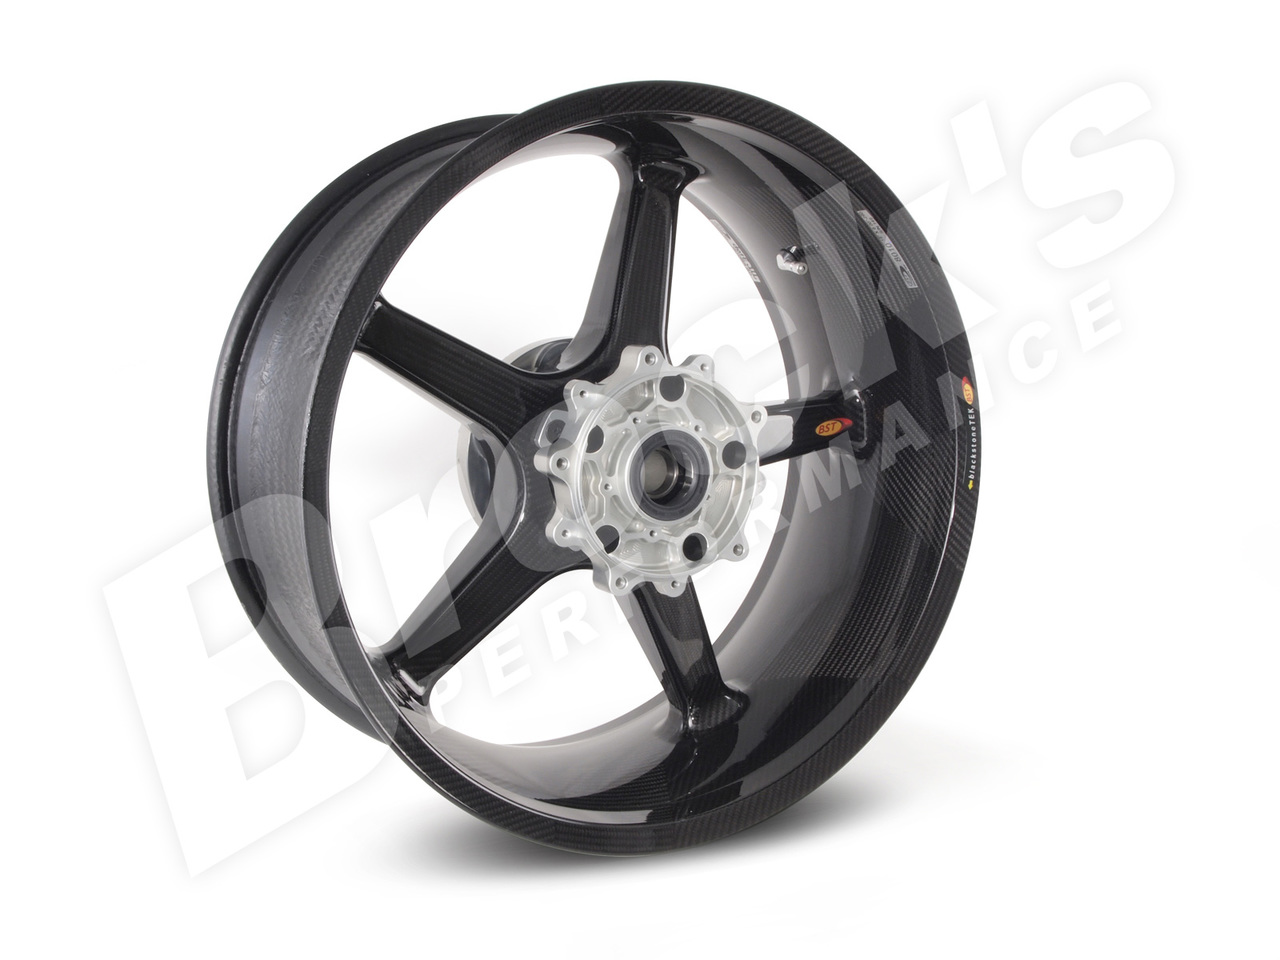 BST Rear Wheel 8.0 x 18 for Yamaha VMAX (09-18) - Brock\'s Performance